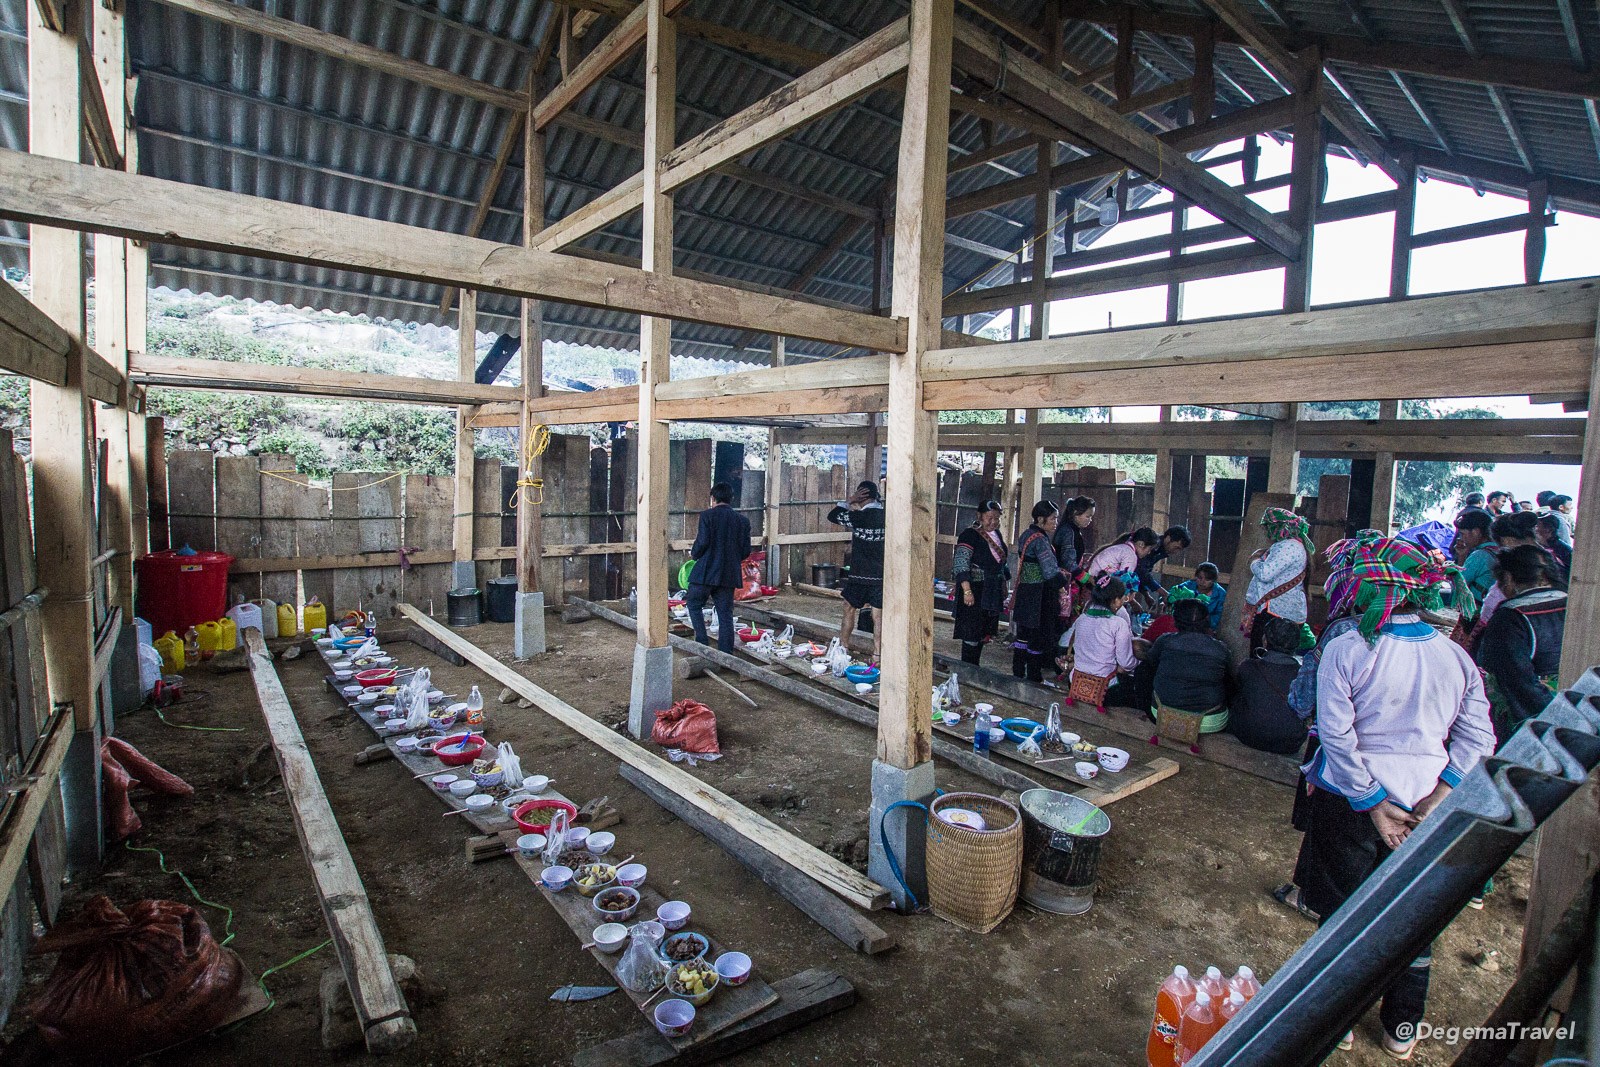 A communal meal laid out in the house under construction in the Mường Hoa Valley near Sapa, Vietnam